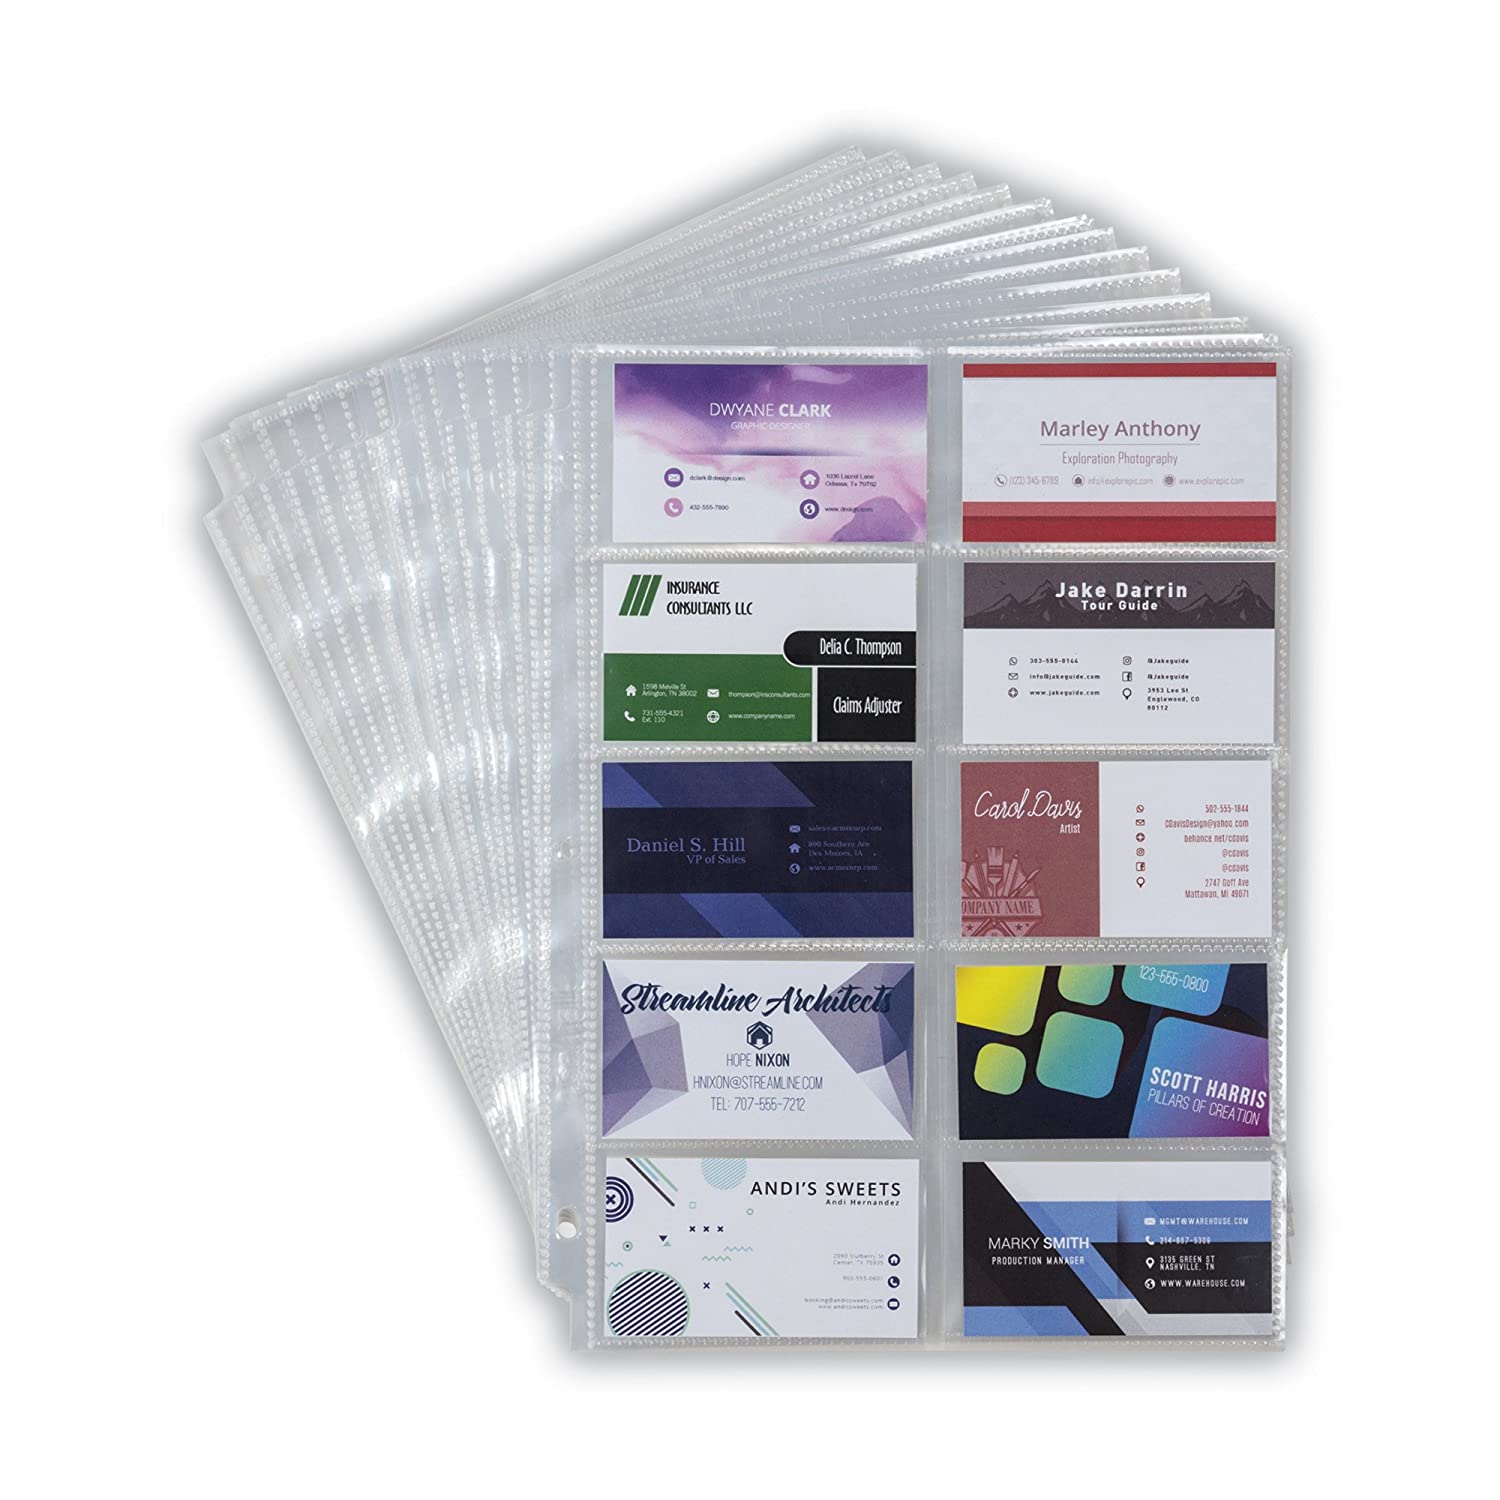 Samsill 25 Heavyweight Business Card Sleeves, Double Sided to Hold 20-3.5 x 2 Inch Business Cards Per Page, Acid Free/Archival Safe, 25 Sheets Per Pack 81090